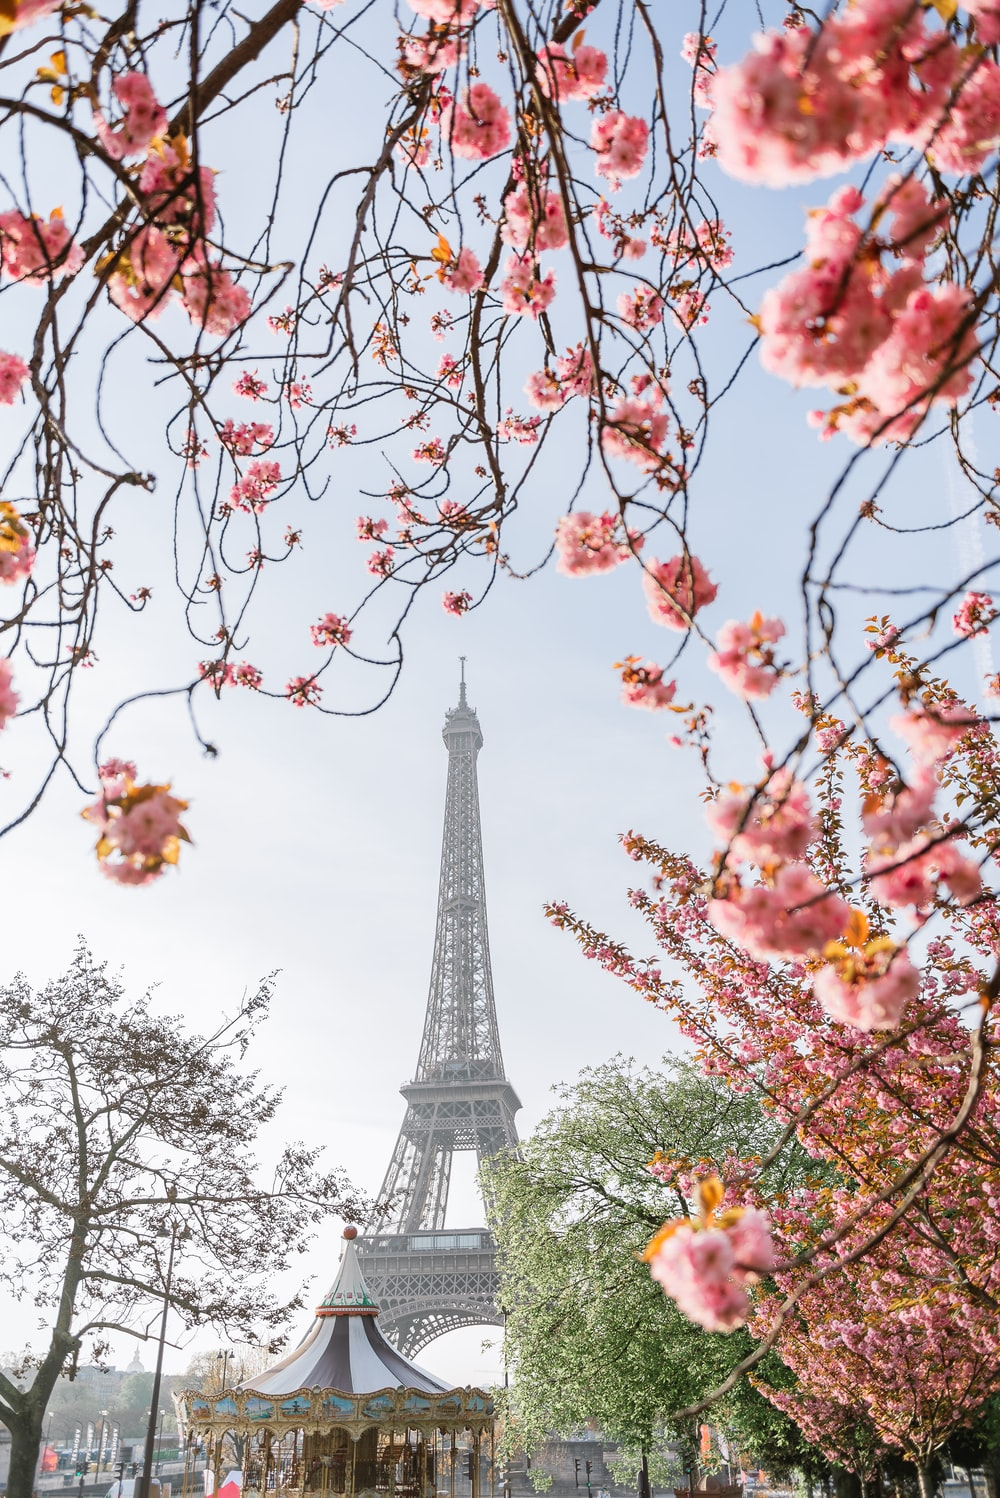 pink and white flowers near eiffel tower during daytime